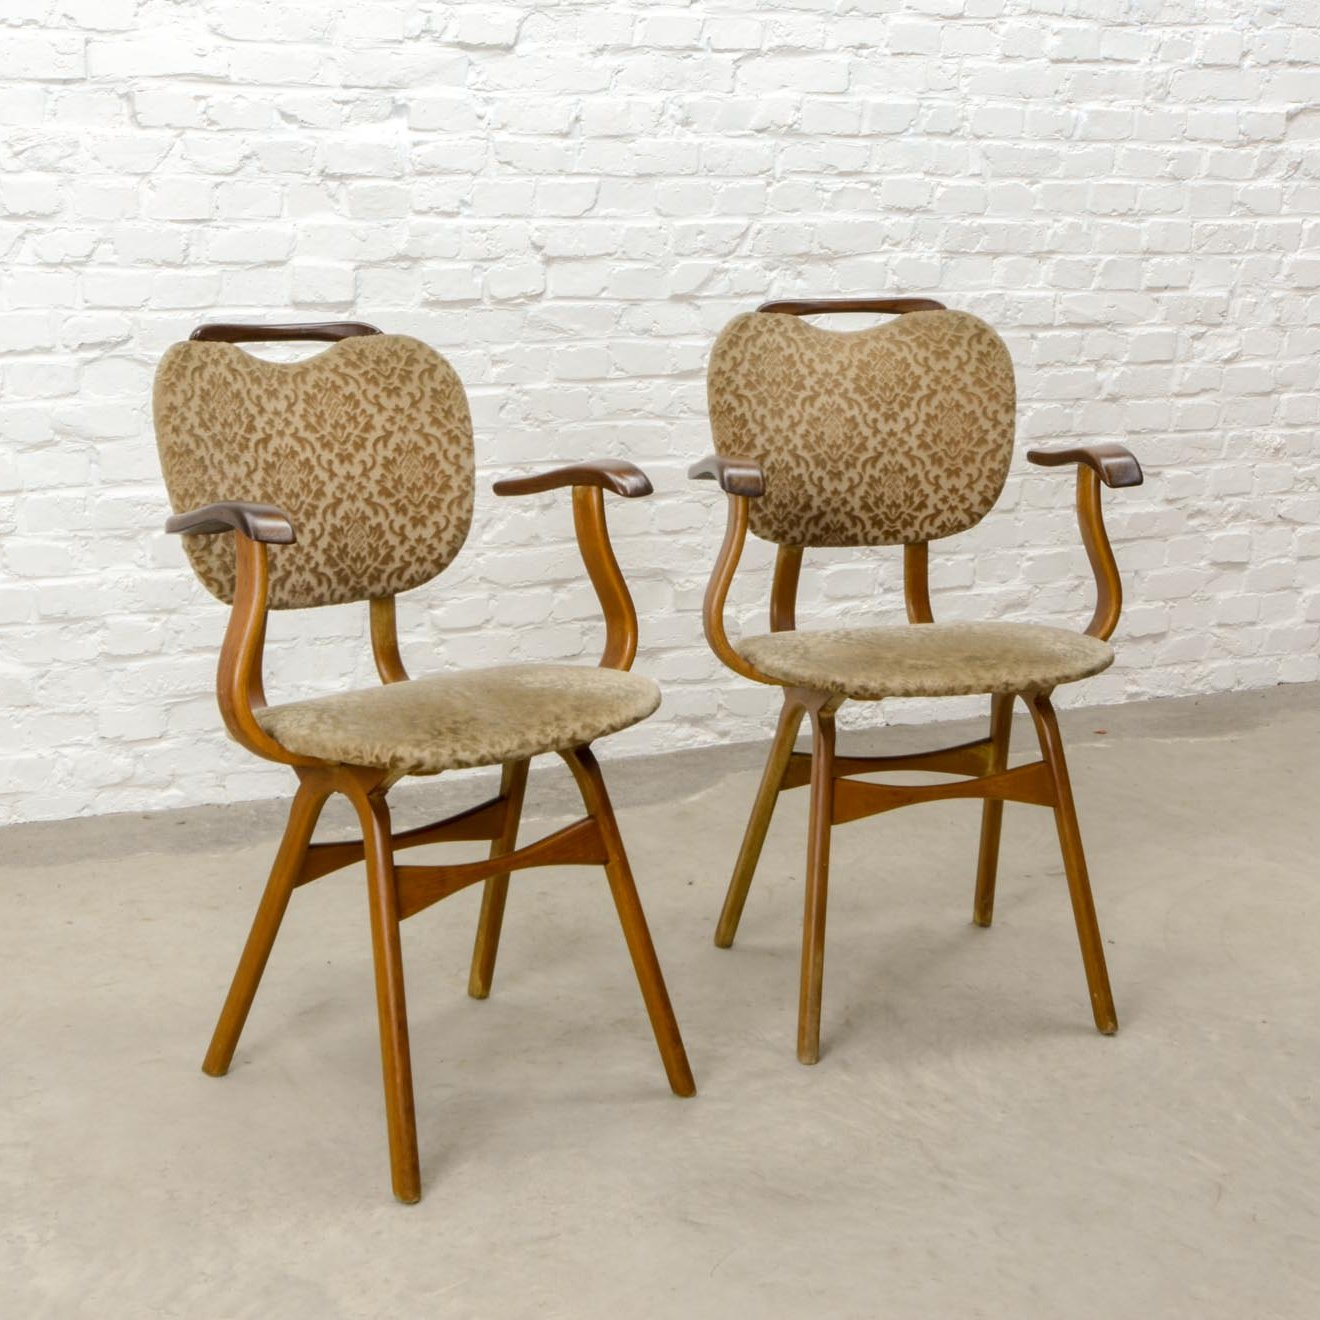 Pair Of Curved Teak Wood Scandinavian Design Dining Side Chairs 1960s 87345